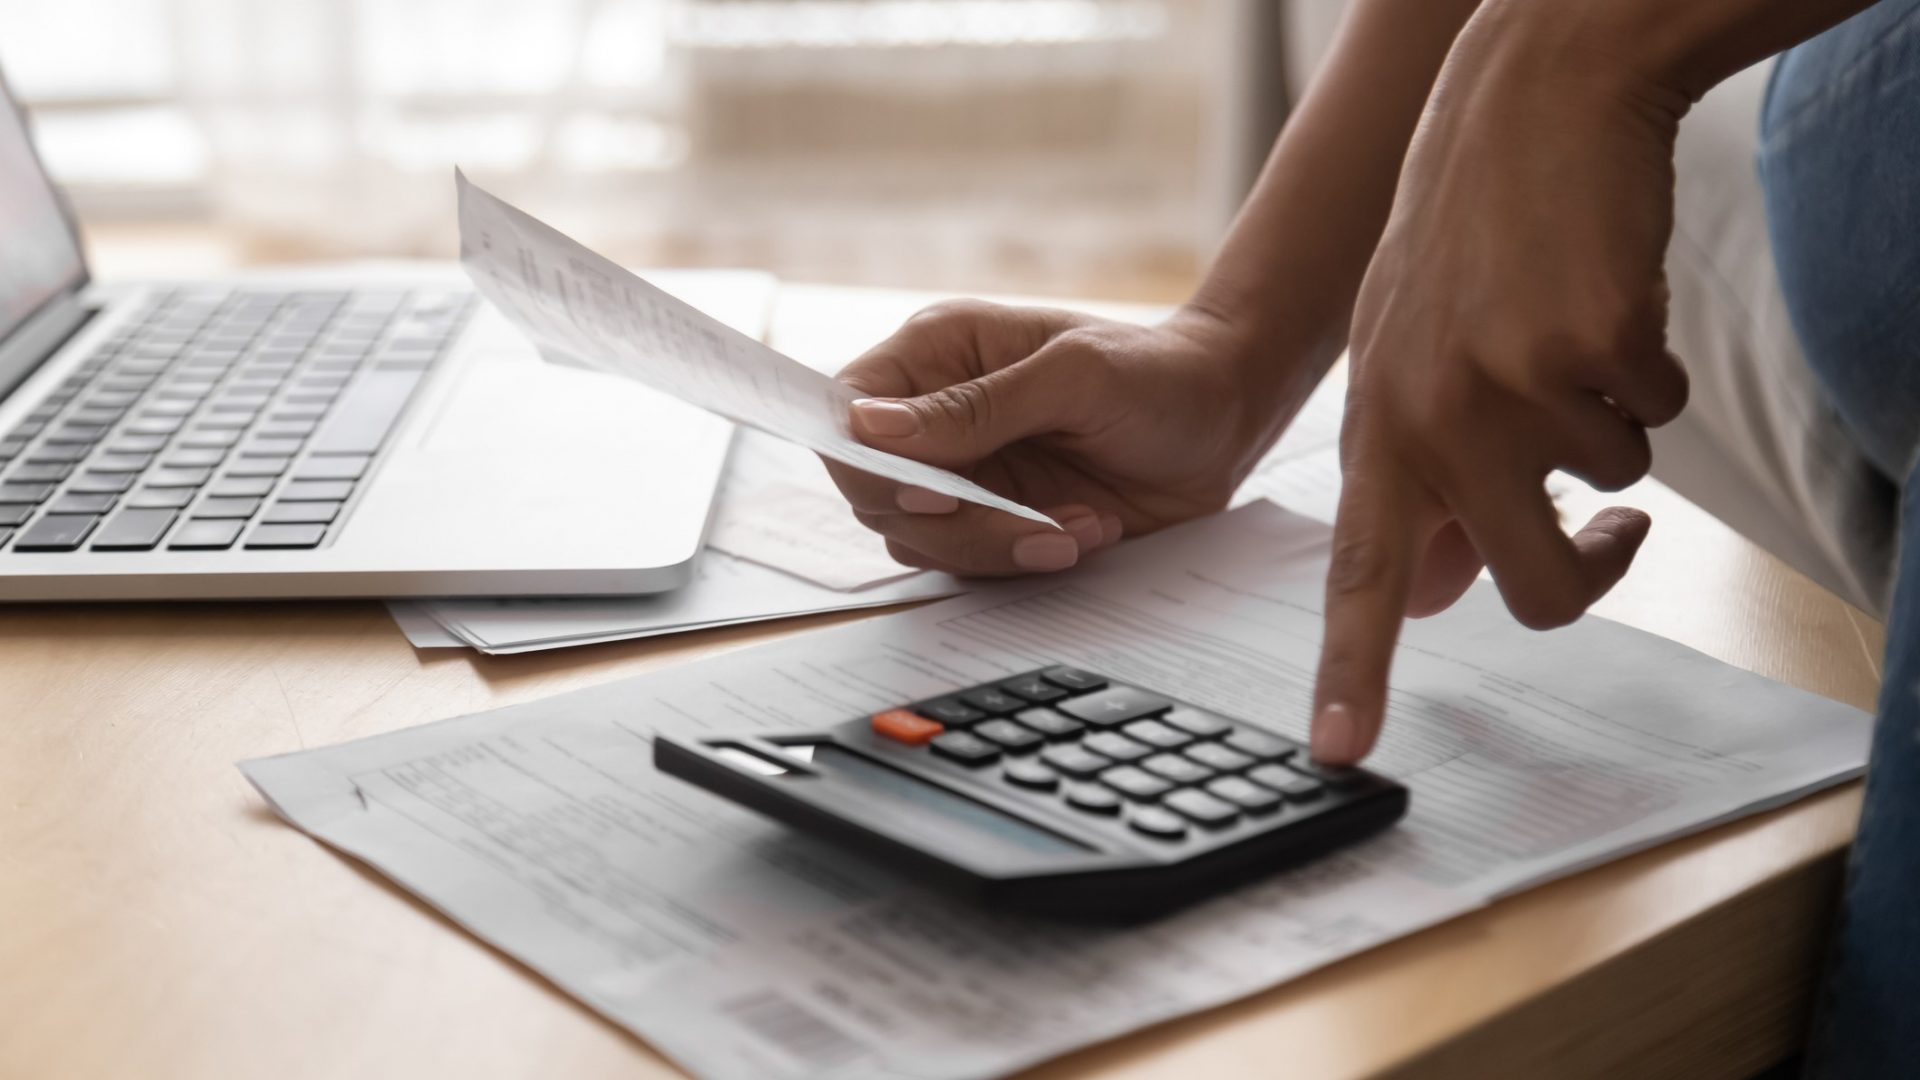 African woman holding in hand paper bills bank receipt using calculator on table calculate debt loan tax cost to pay manage finances concept doing accounting paperwork budget analysis, close up view.